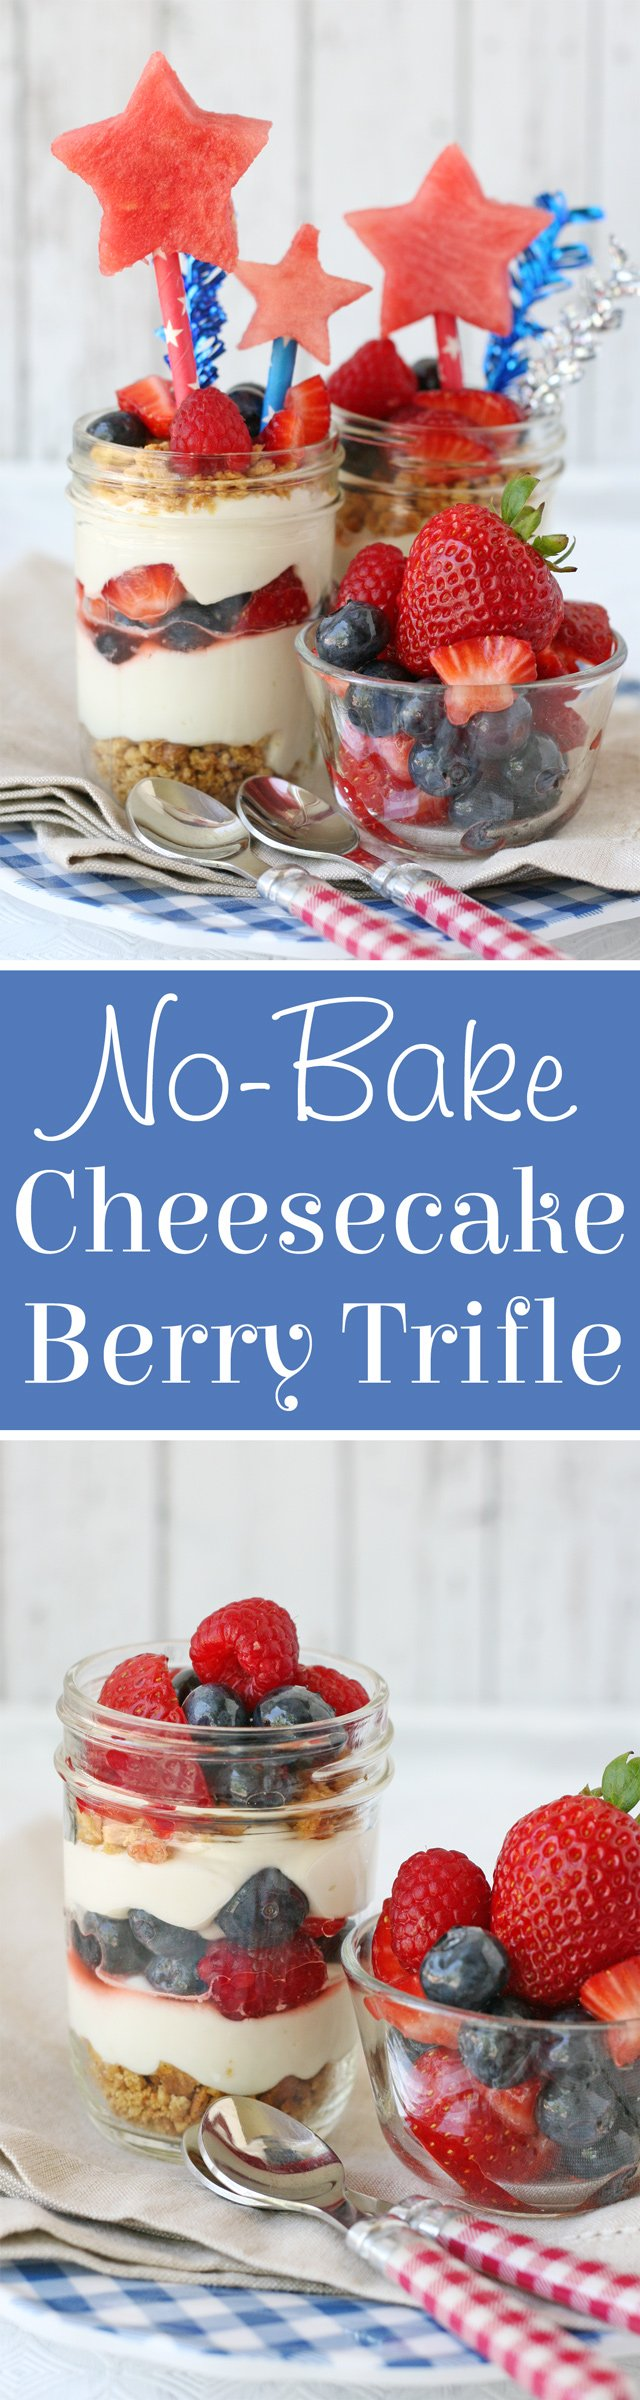 No-Bake Berry Cheesecake Trifle Recipe